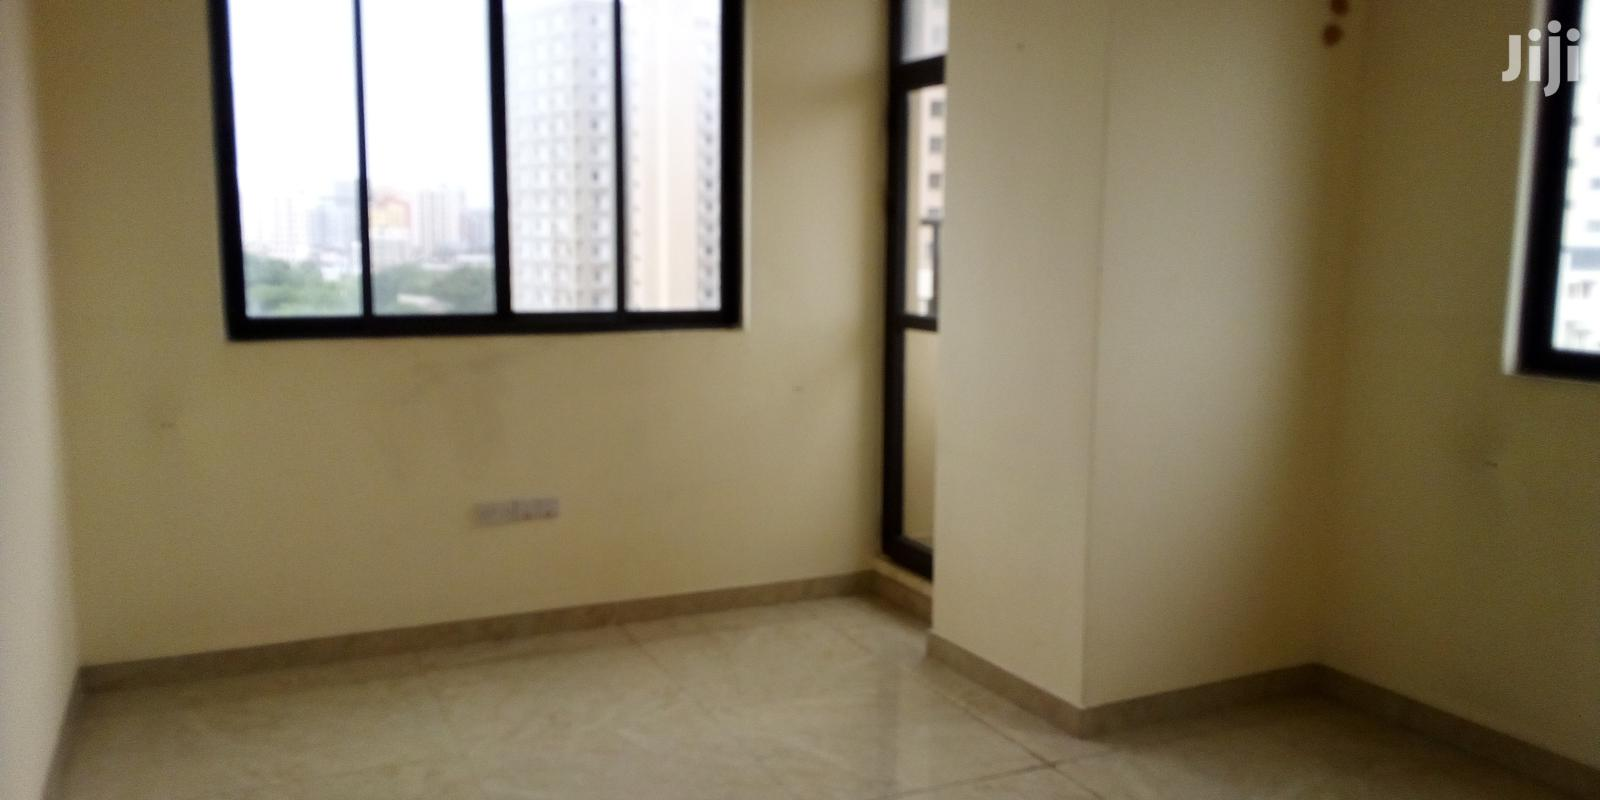 Luxury 3 Bedrooms Semi-Furnished for Rent at Upanga | Houses & Apartments For Rent for sale in Upanga East, Ilala, Tanzania